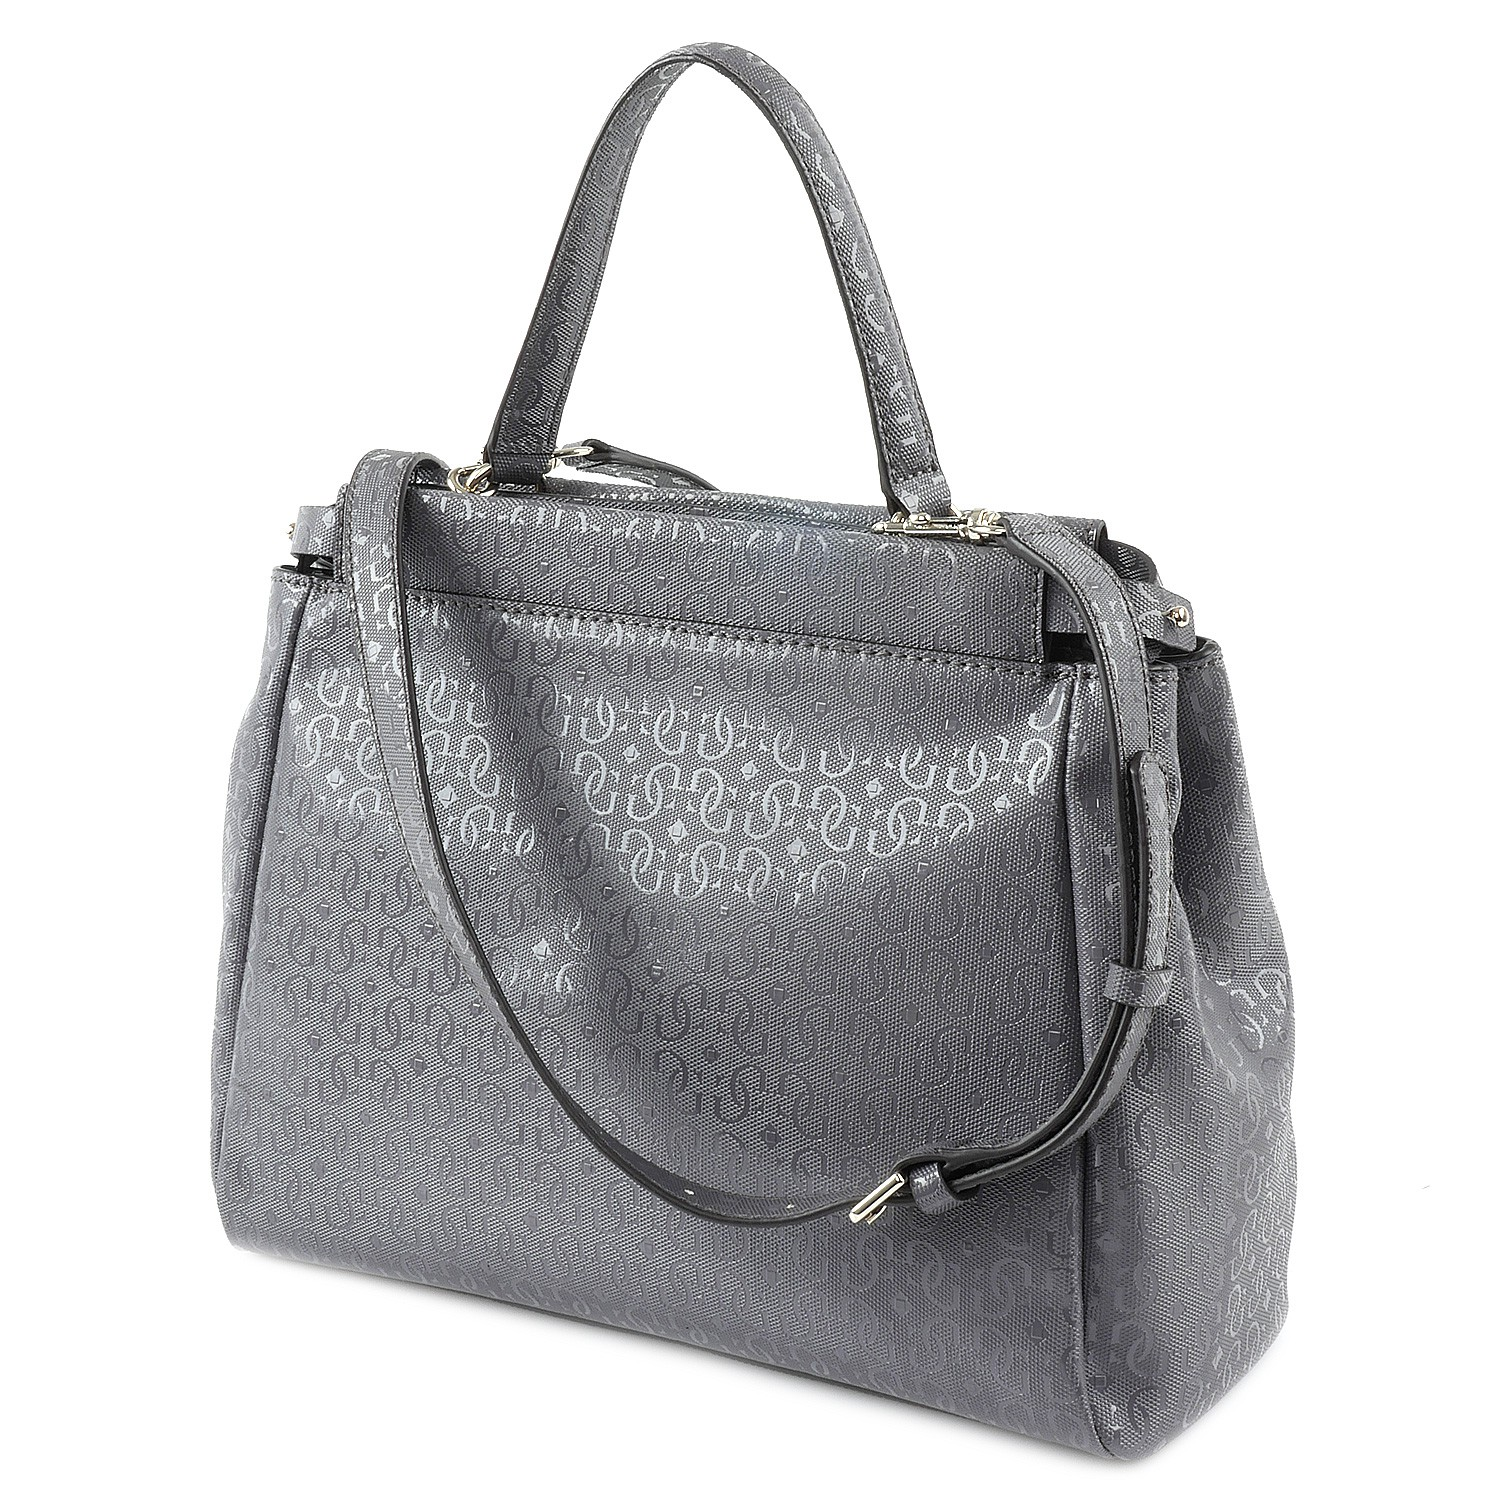 46dc8f5018 Sac Guess de Luxe Sac - Winett - Turnlock Sacoche - Gris | eBay